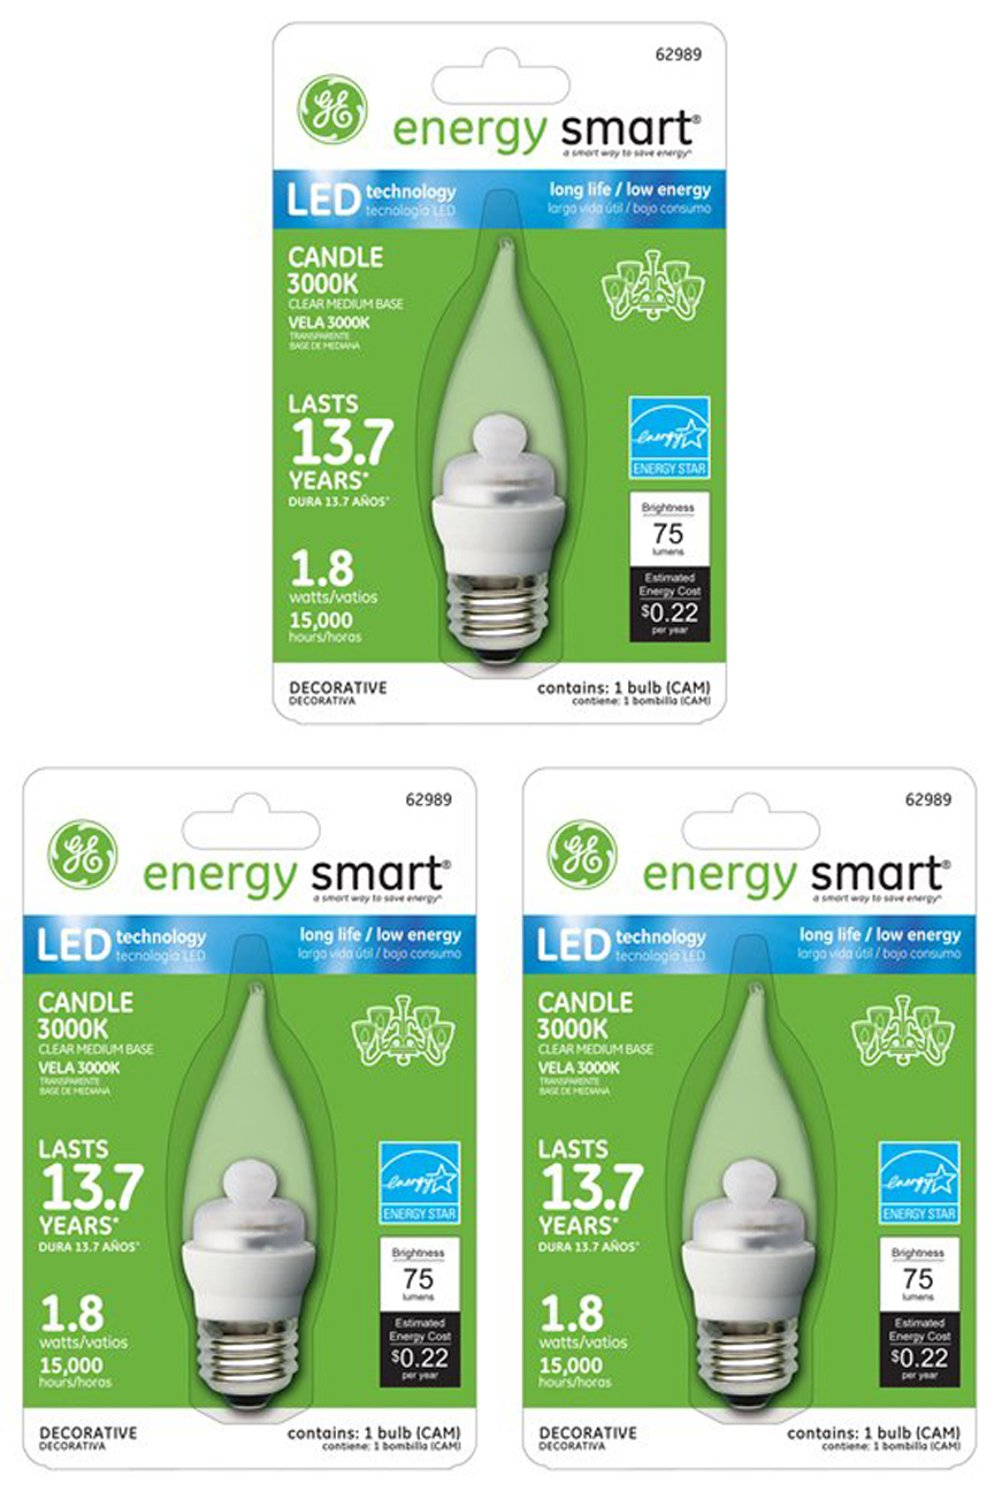 GE Lighting 62989 1.8-Watt Clear LED Candle-Shape Light Bulb, Medium Base (3 Pack) - - Amazon.com